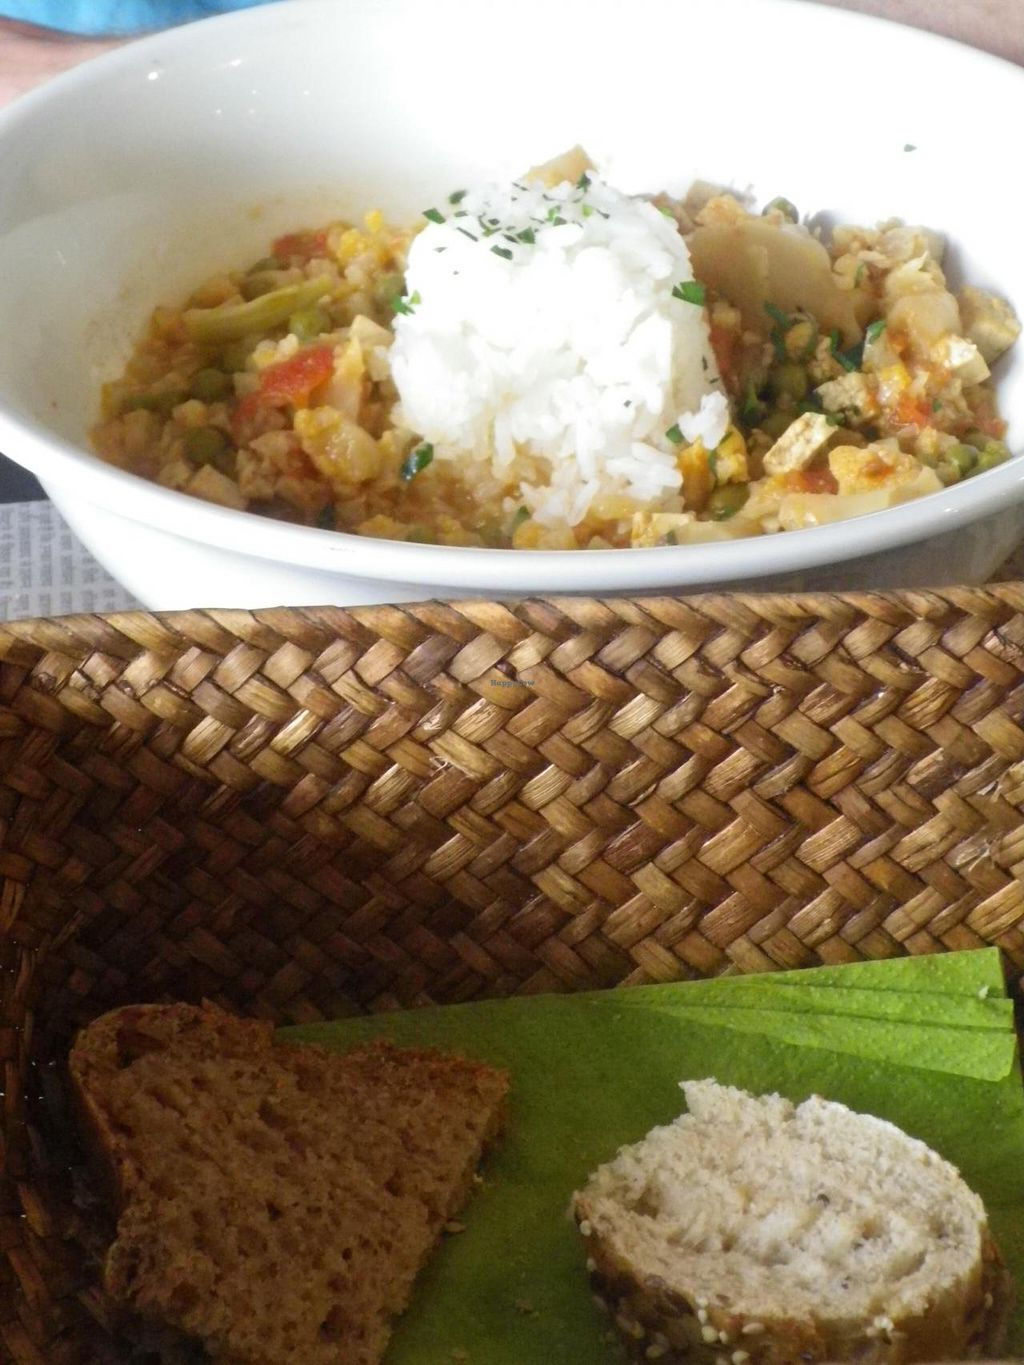 """Photo of Sukha Espai Vegetarian  by <a href=""""/members/profile/Becky%20Louise"""">Becky Louise</a> <br/>Thai style main - lots of veggies and homemade bread. We were happy bunnies! <br/> May 18, 2014  - <a href='/contact/abuse/image/38753/70236'>Report</a>"""